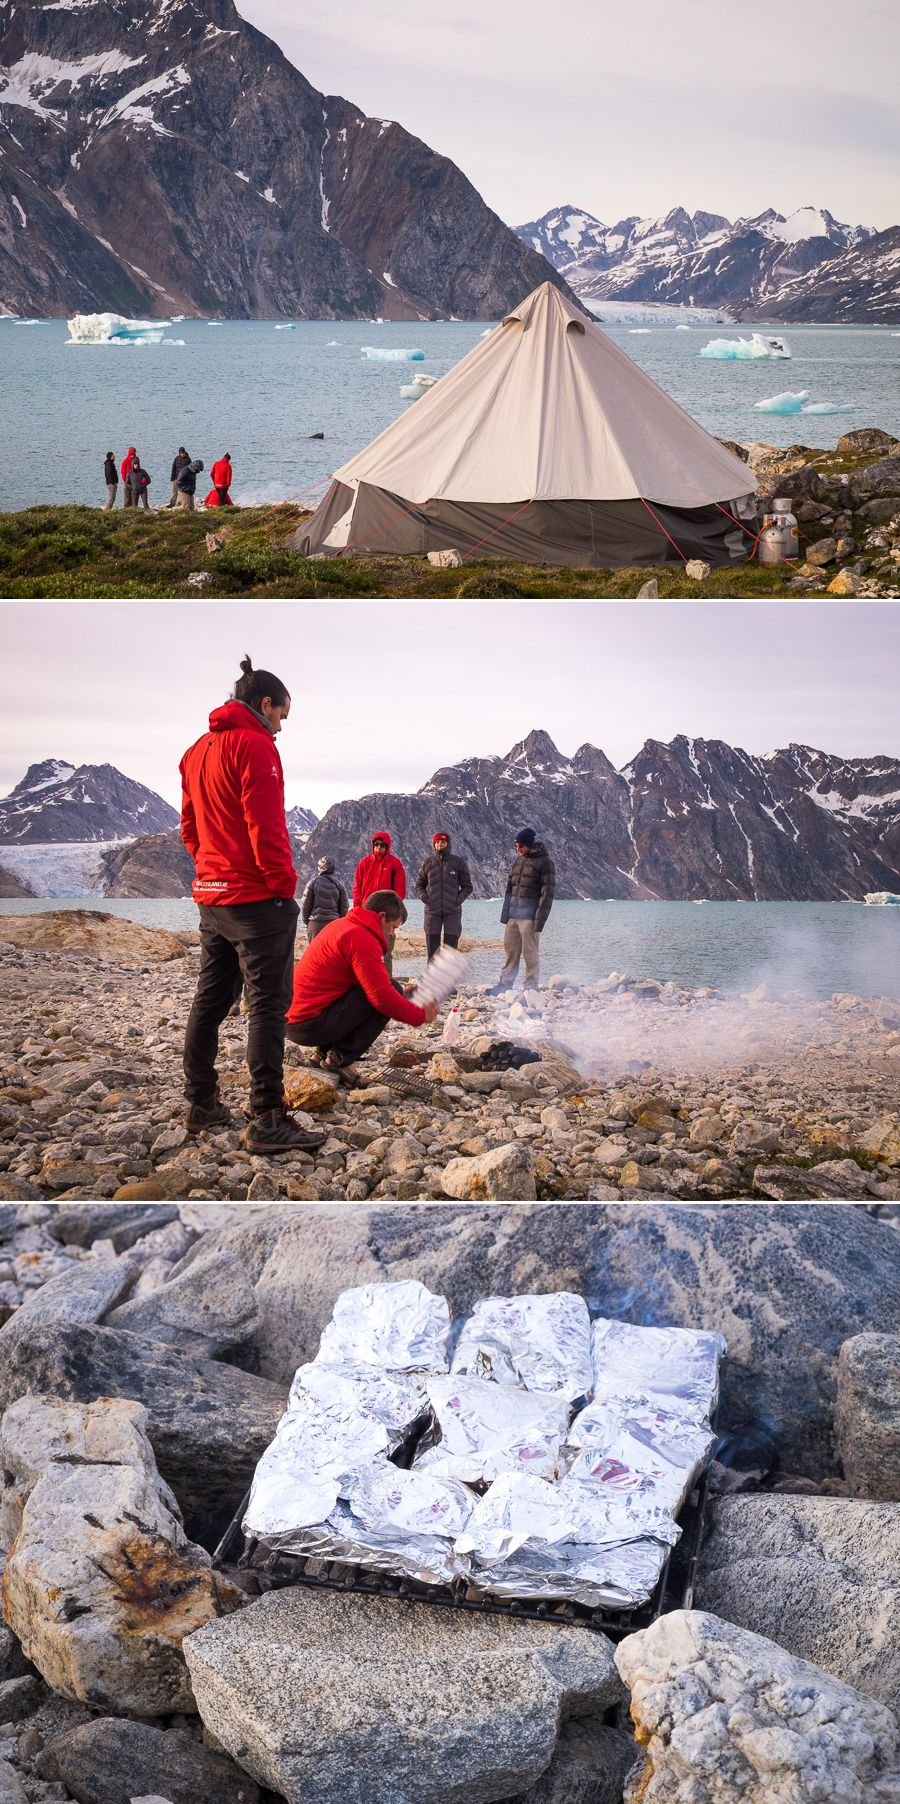 Cooking dinner on the shore of the Karale fjord at our first campsite on the Unplugged Wilderness Trek